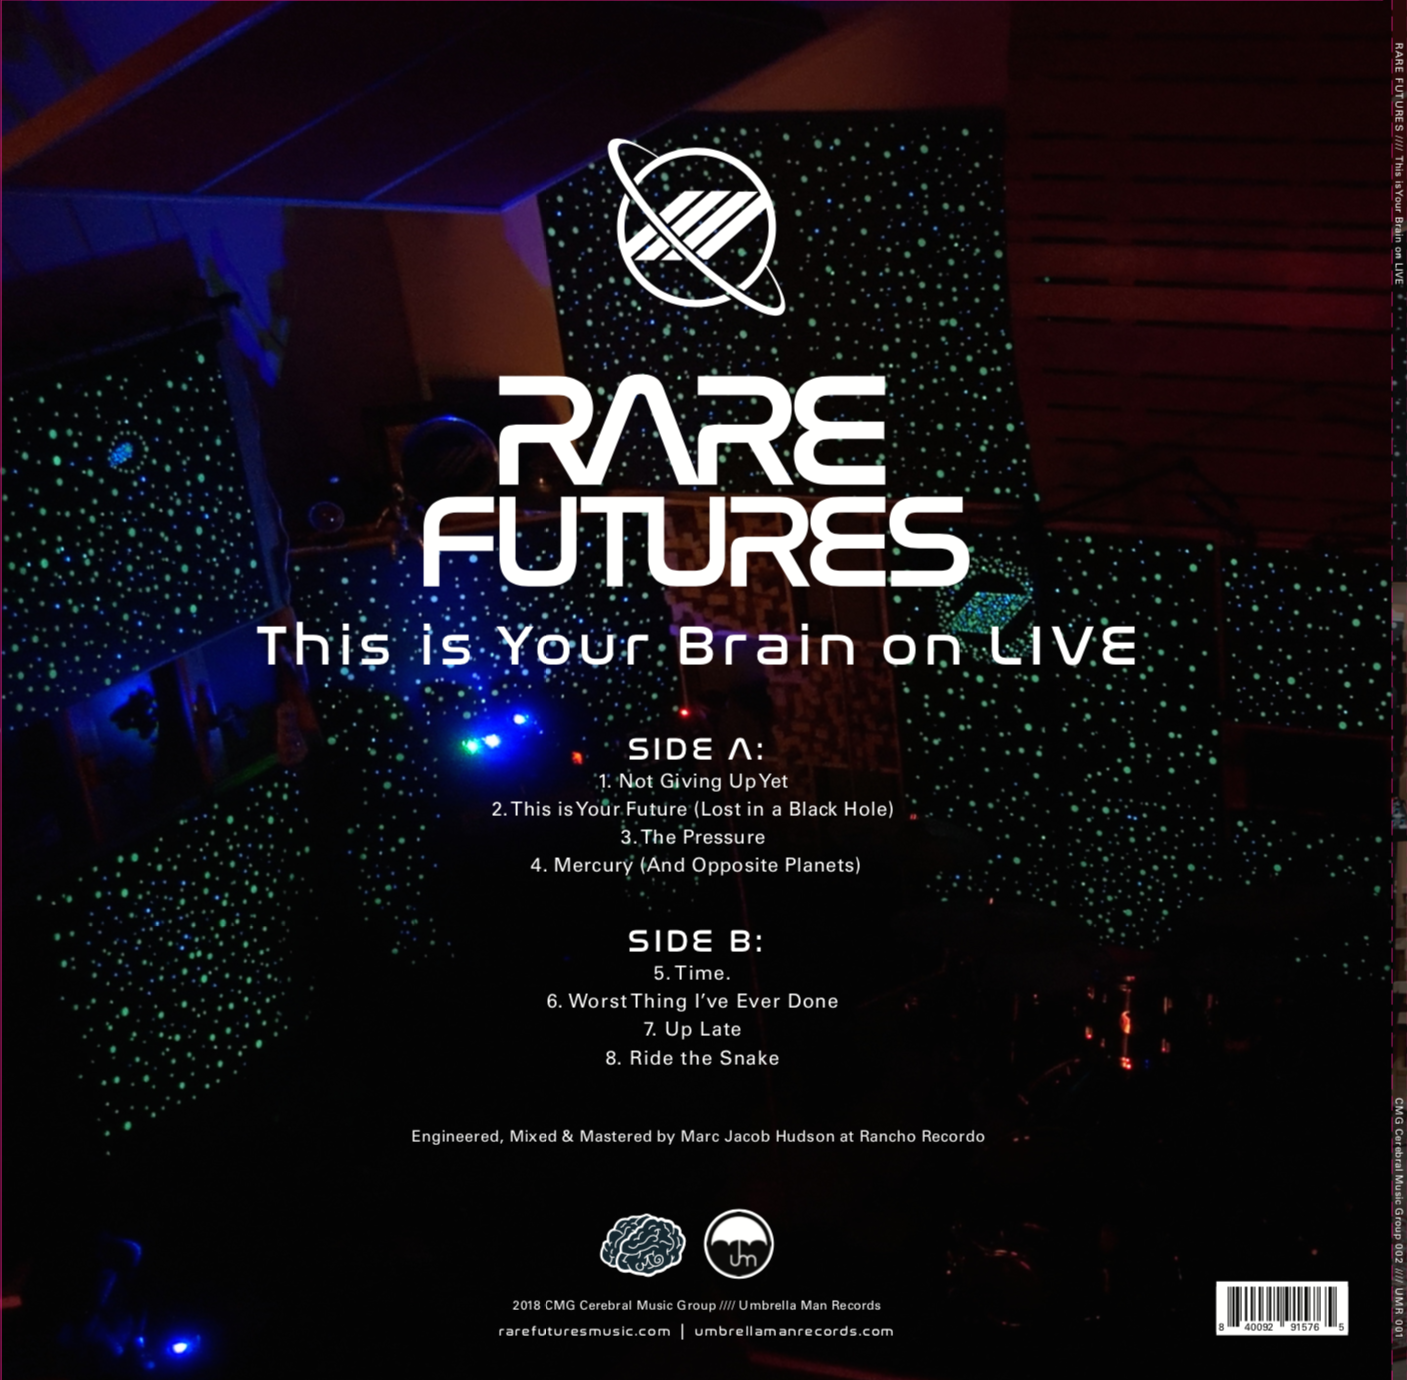 Collector's Bundle - Rare Futures - This Is Your Brain On LIVE